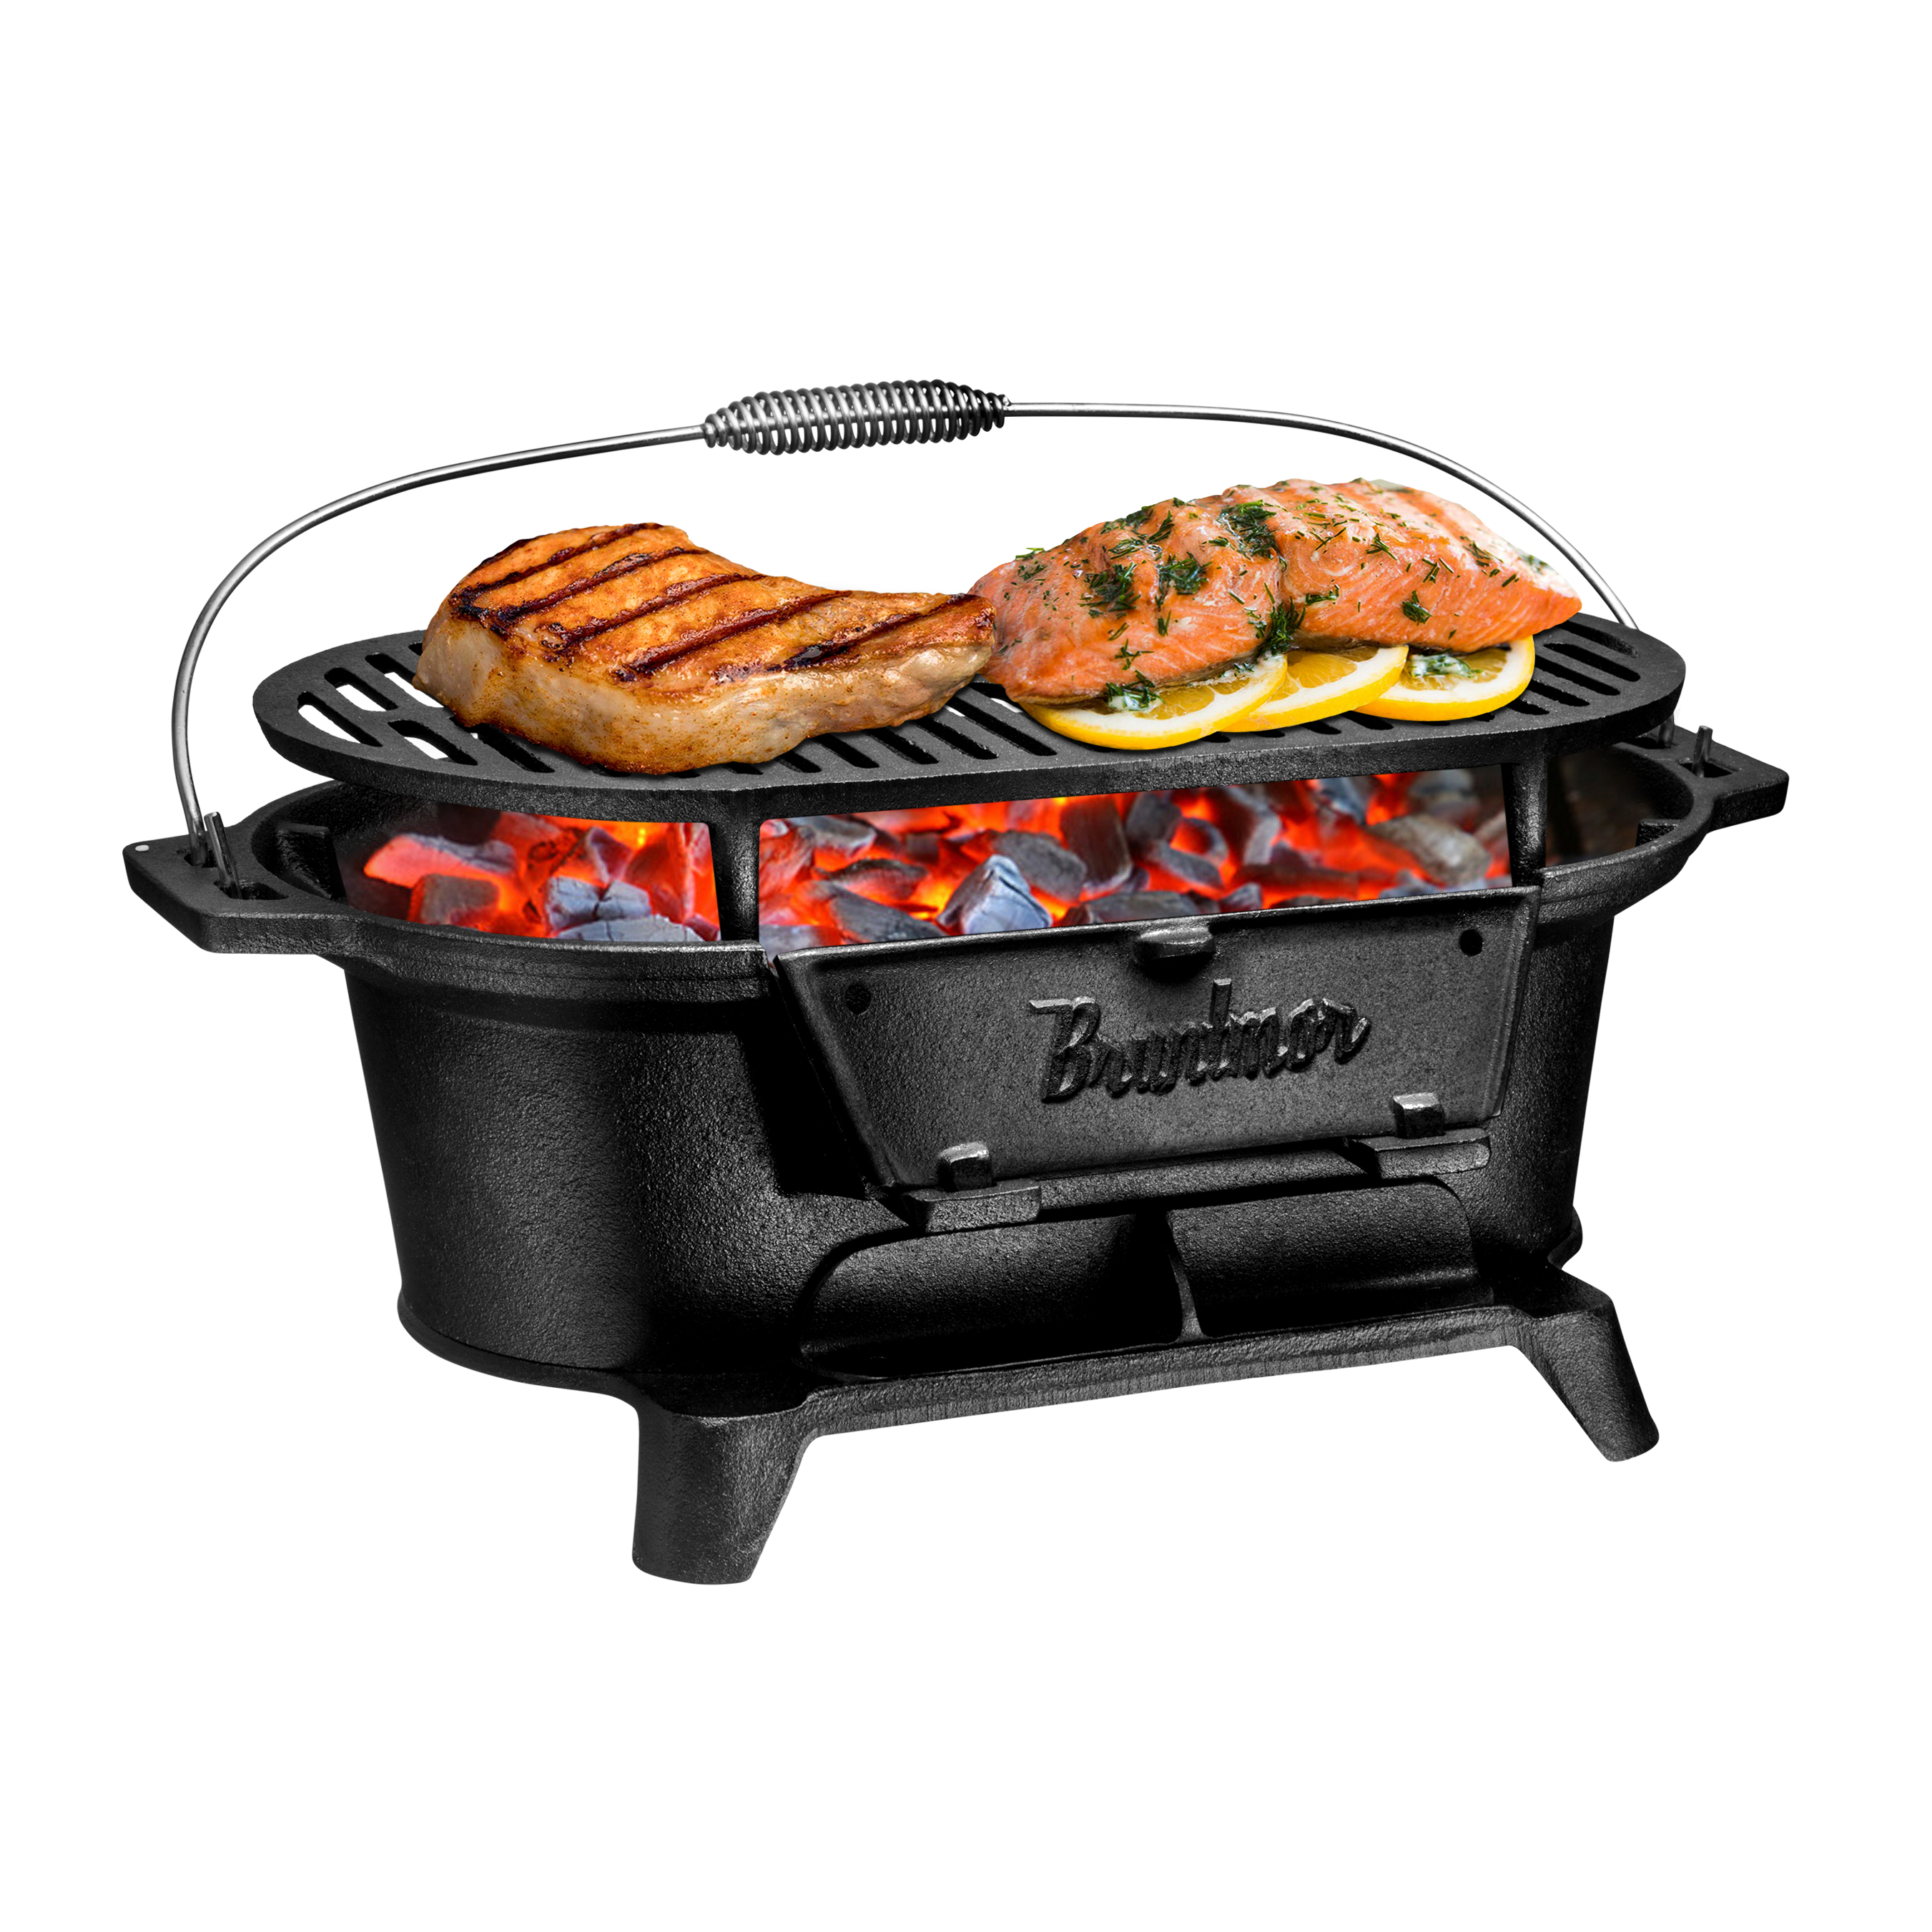 Bruntmor Cast Iron Charcoal BBQ Grill